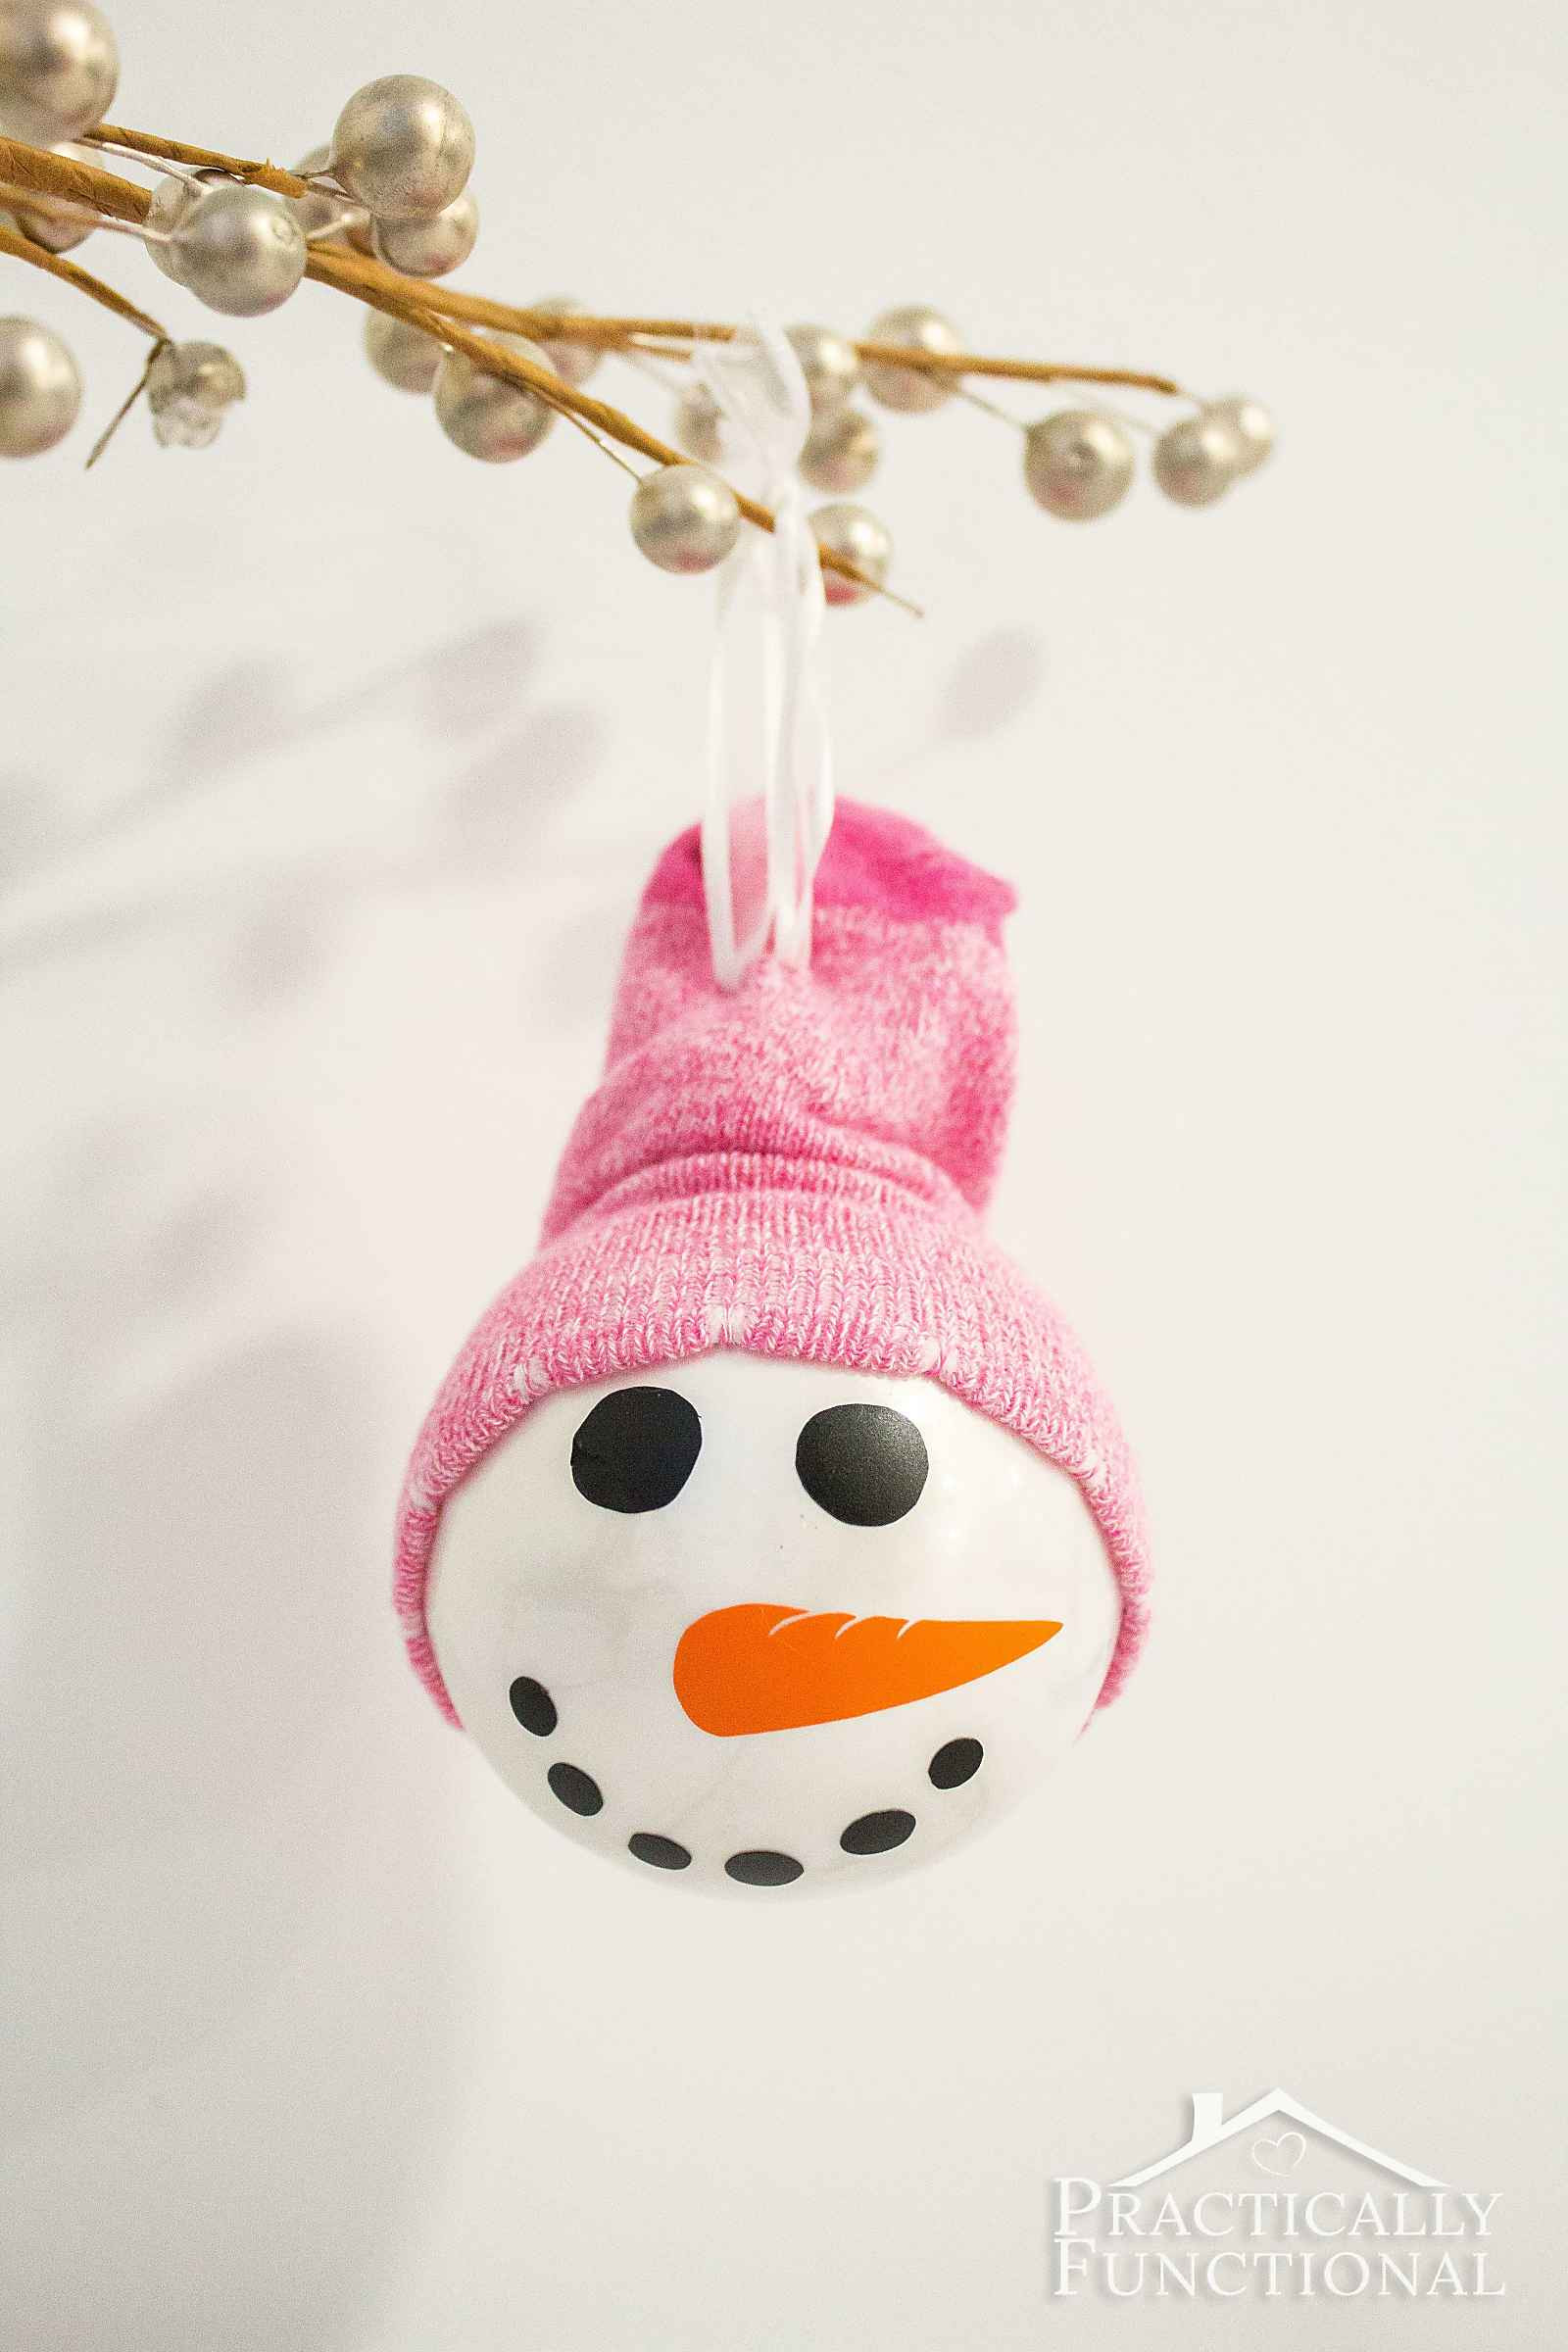 Best ideas about DIY Snowman Ornaments . Save or Pin DIY Snowman Ornament With A Sock Hat Now.